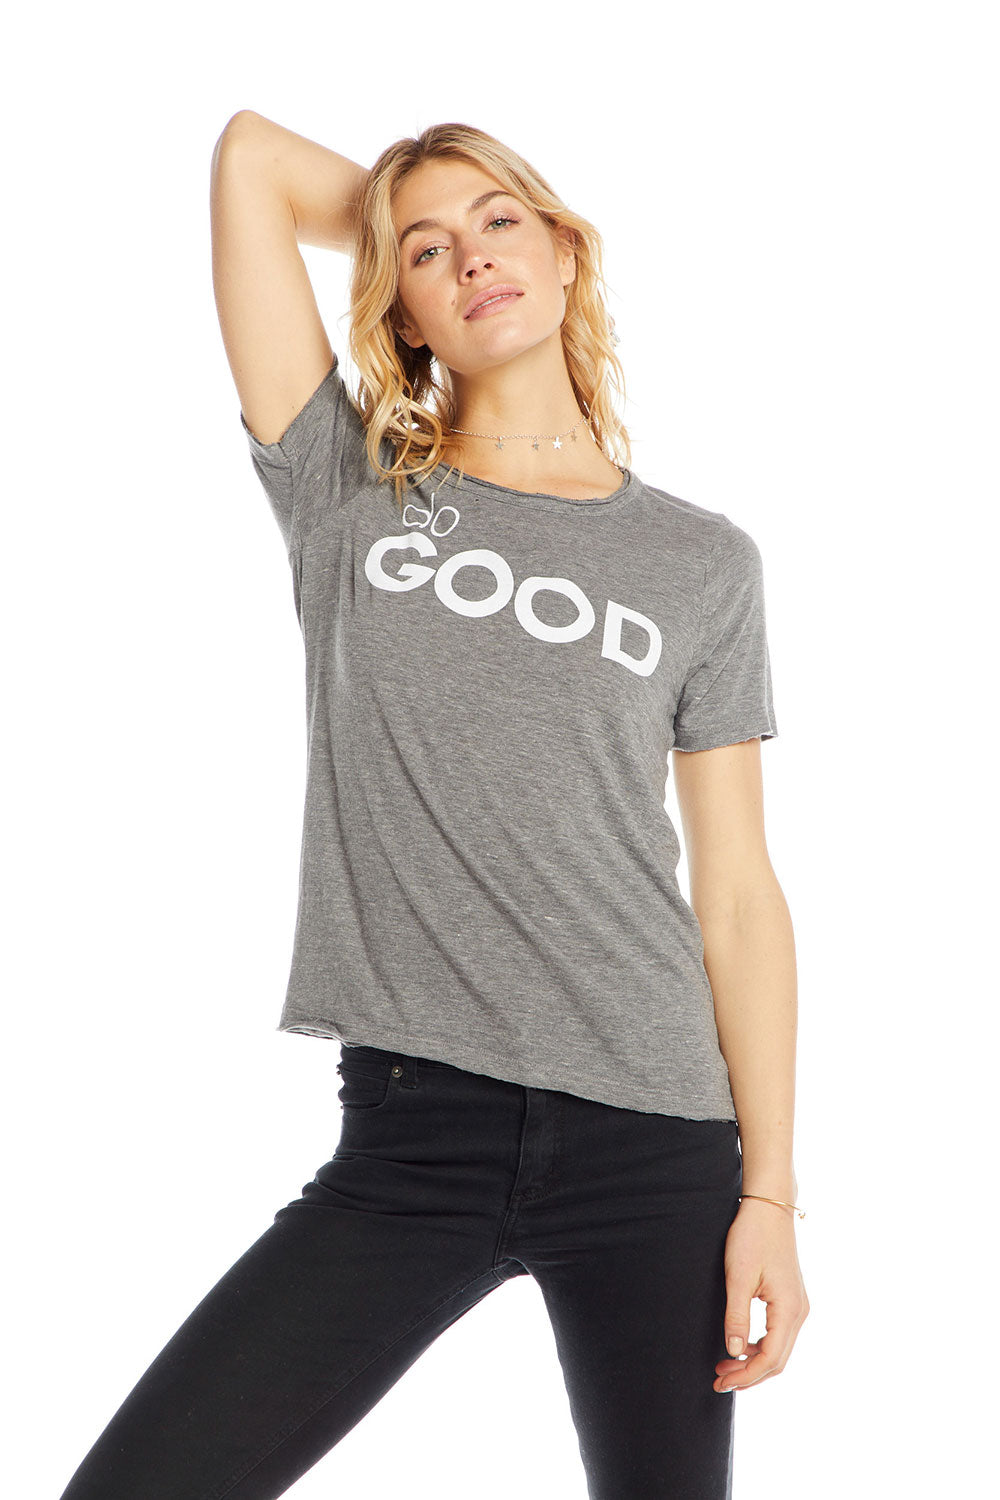 Do Good WOMENS chaserbrand4.myshopify.com